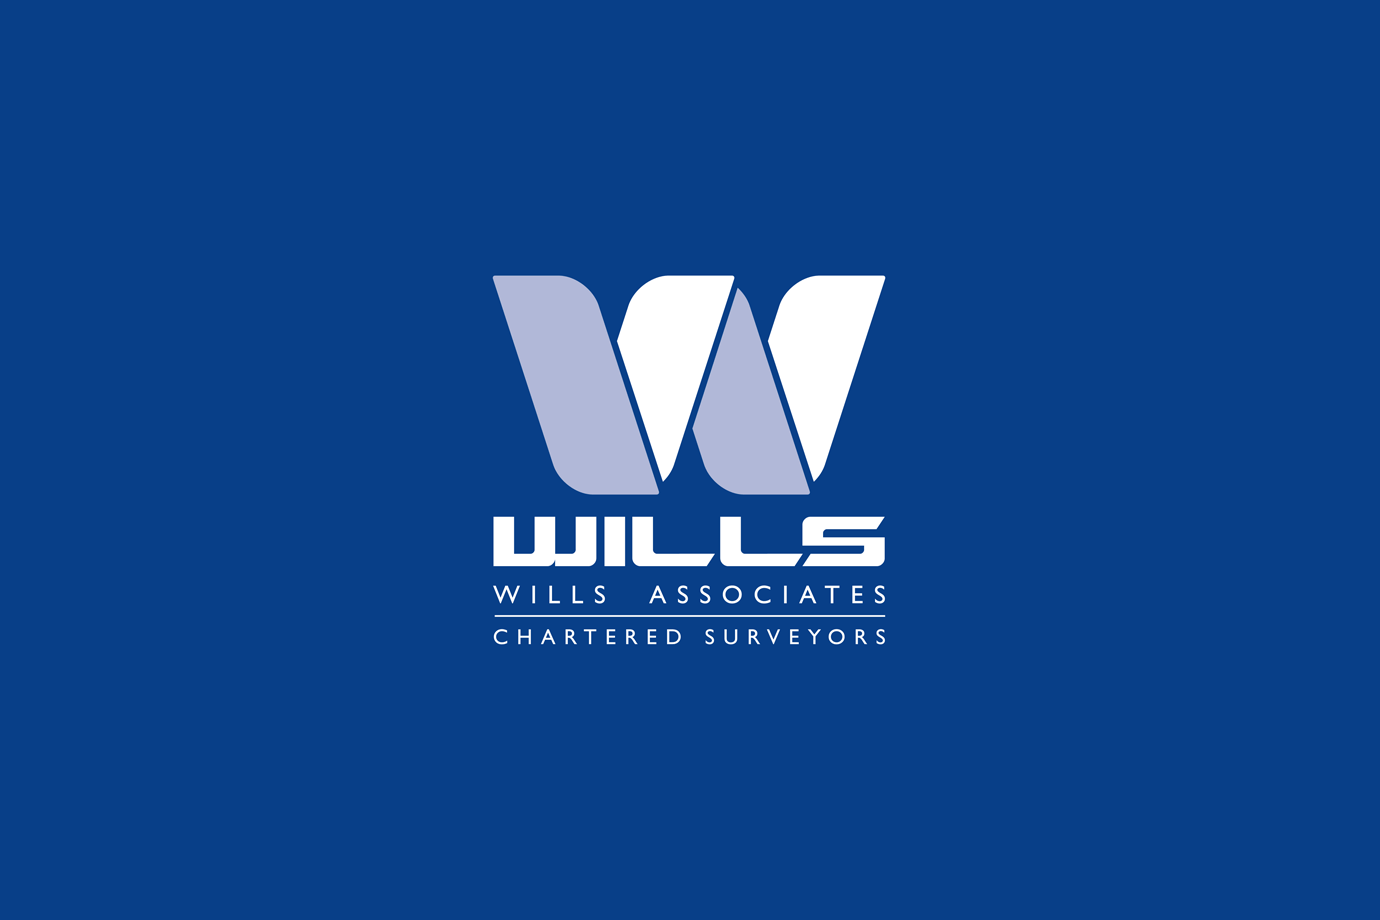 Wills & Co. Limited